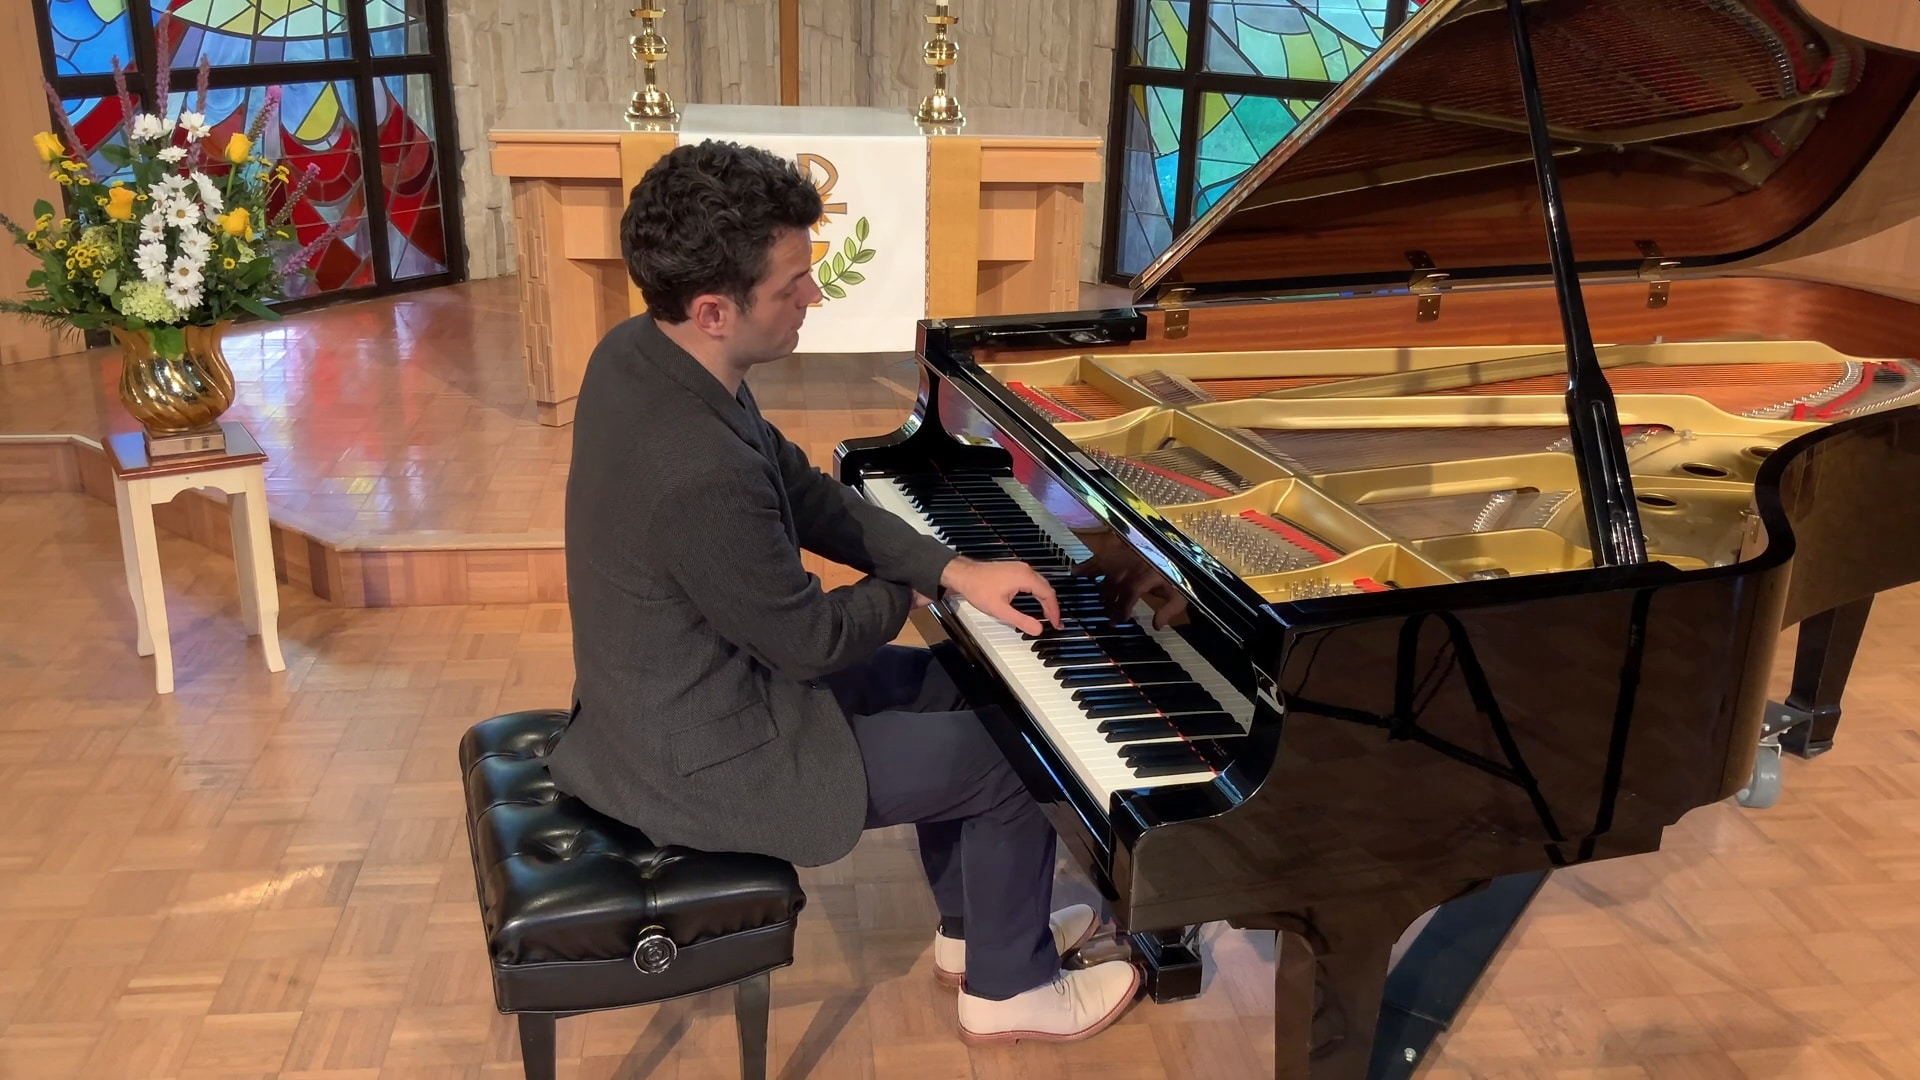 Pastimes for a Lifetime interviews Steven Vanhauwaert on his Second Sundays at Two Concert